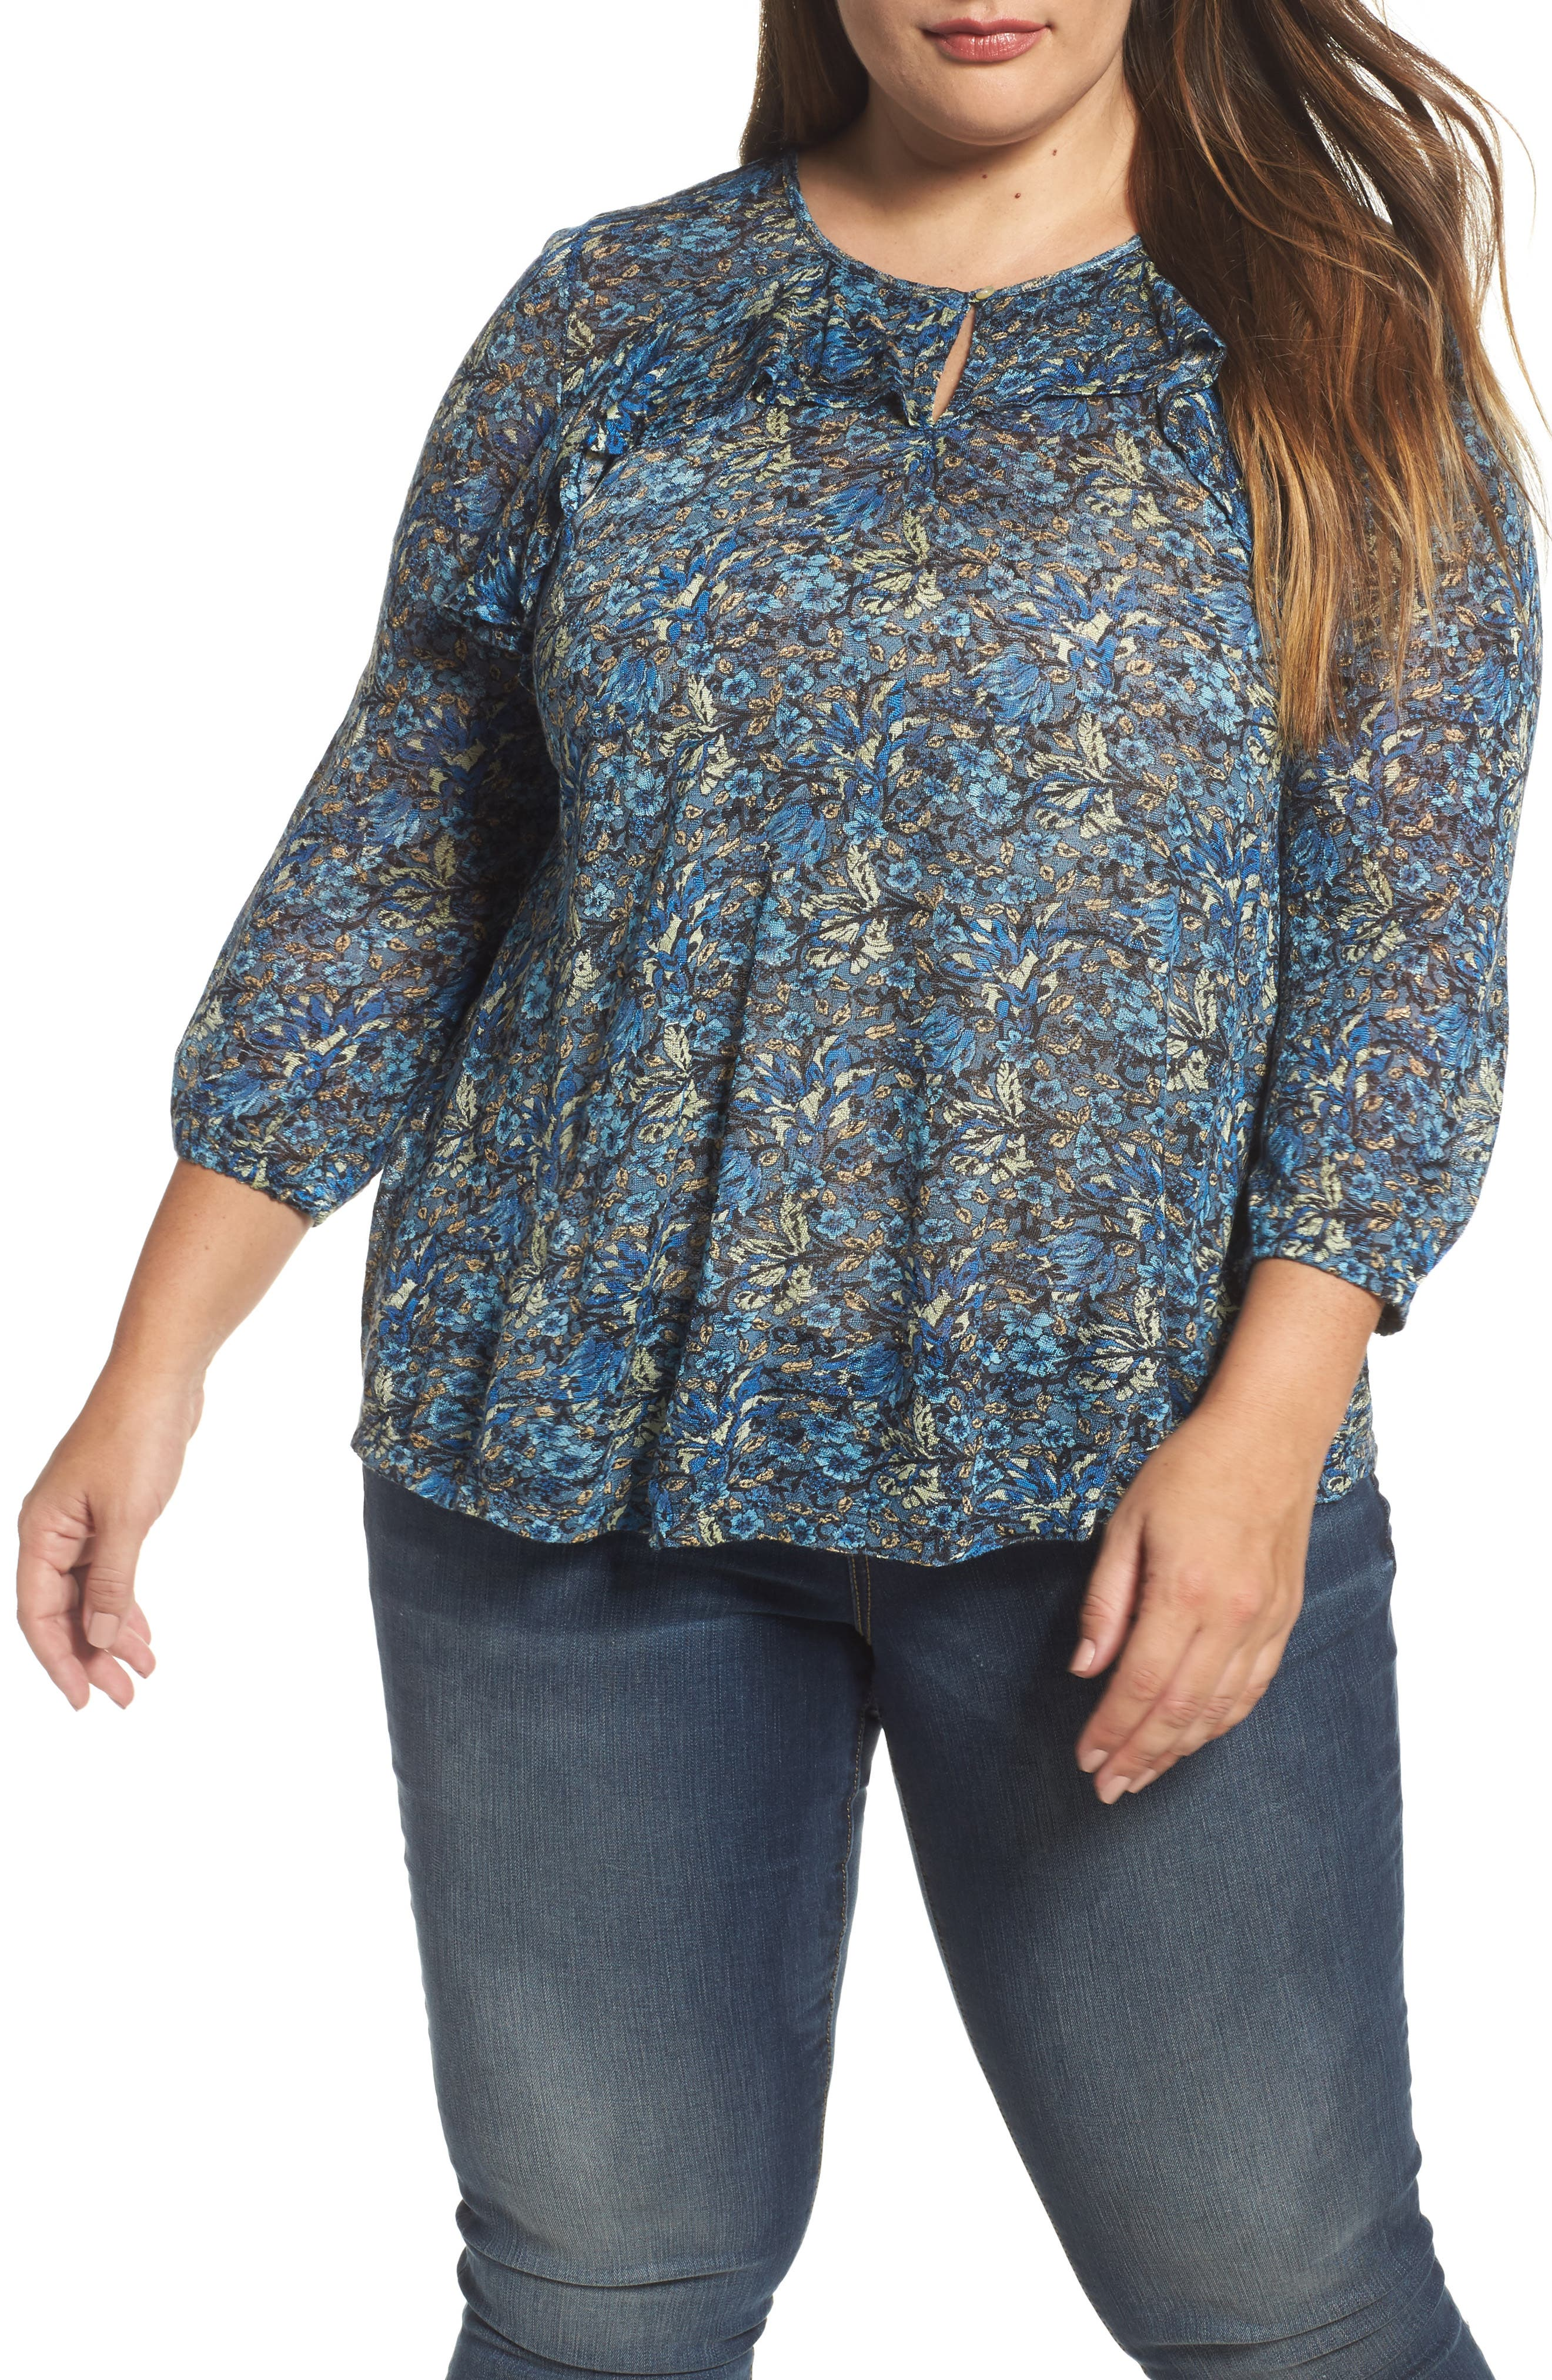 Ruffle Trim Floral Top,                             Main thumbnail 1, color,                             400